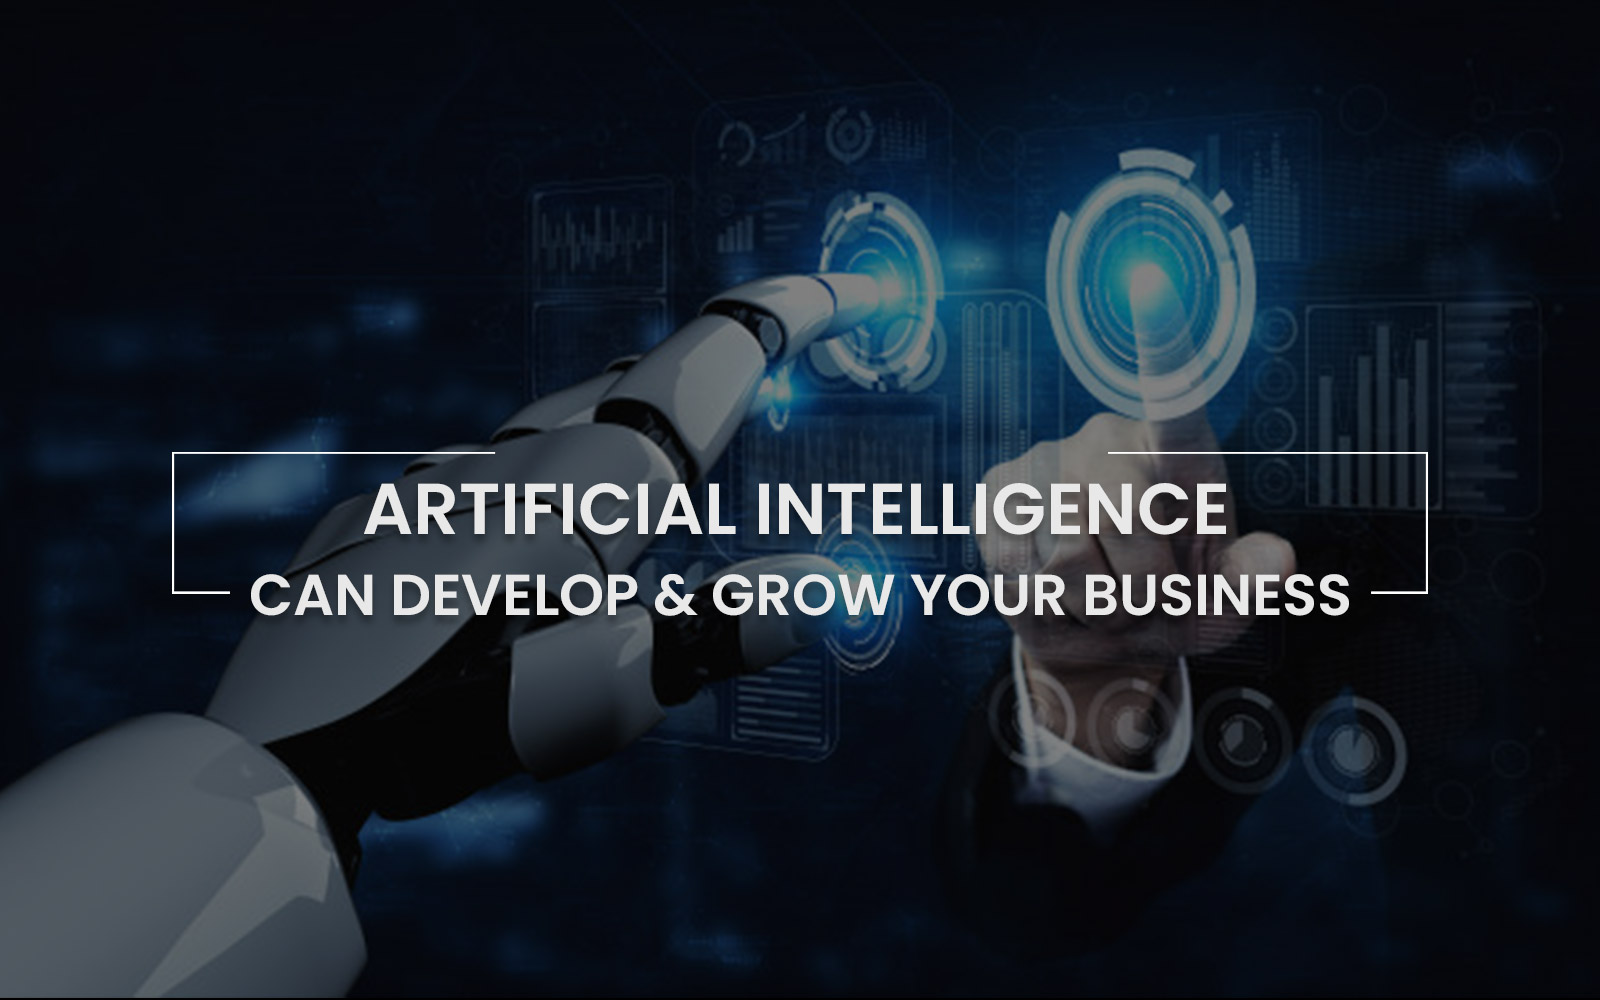 How Evolving Artificial Intelligence Can Help Grow Your Business